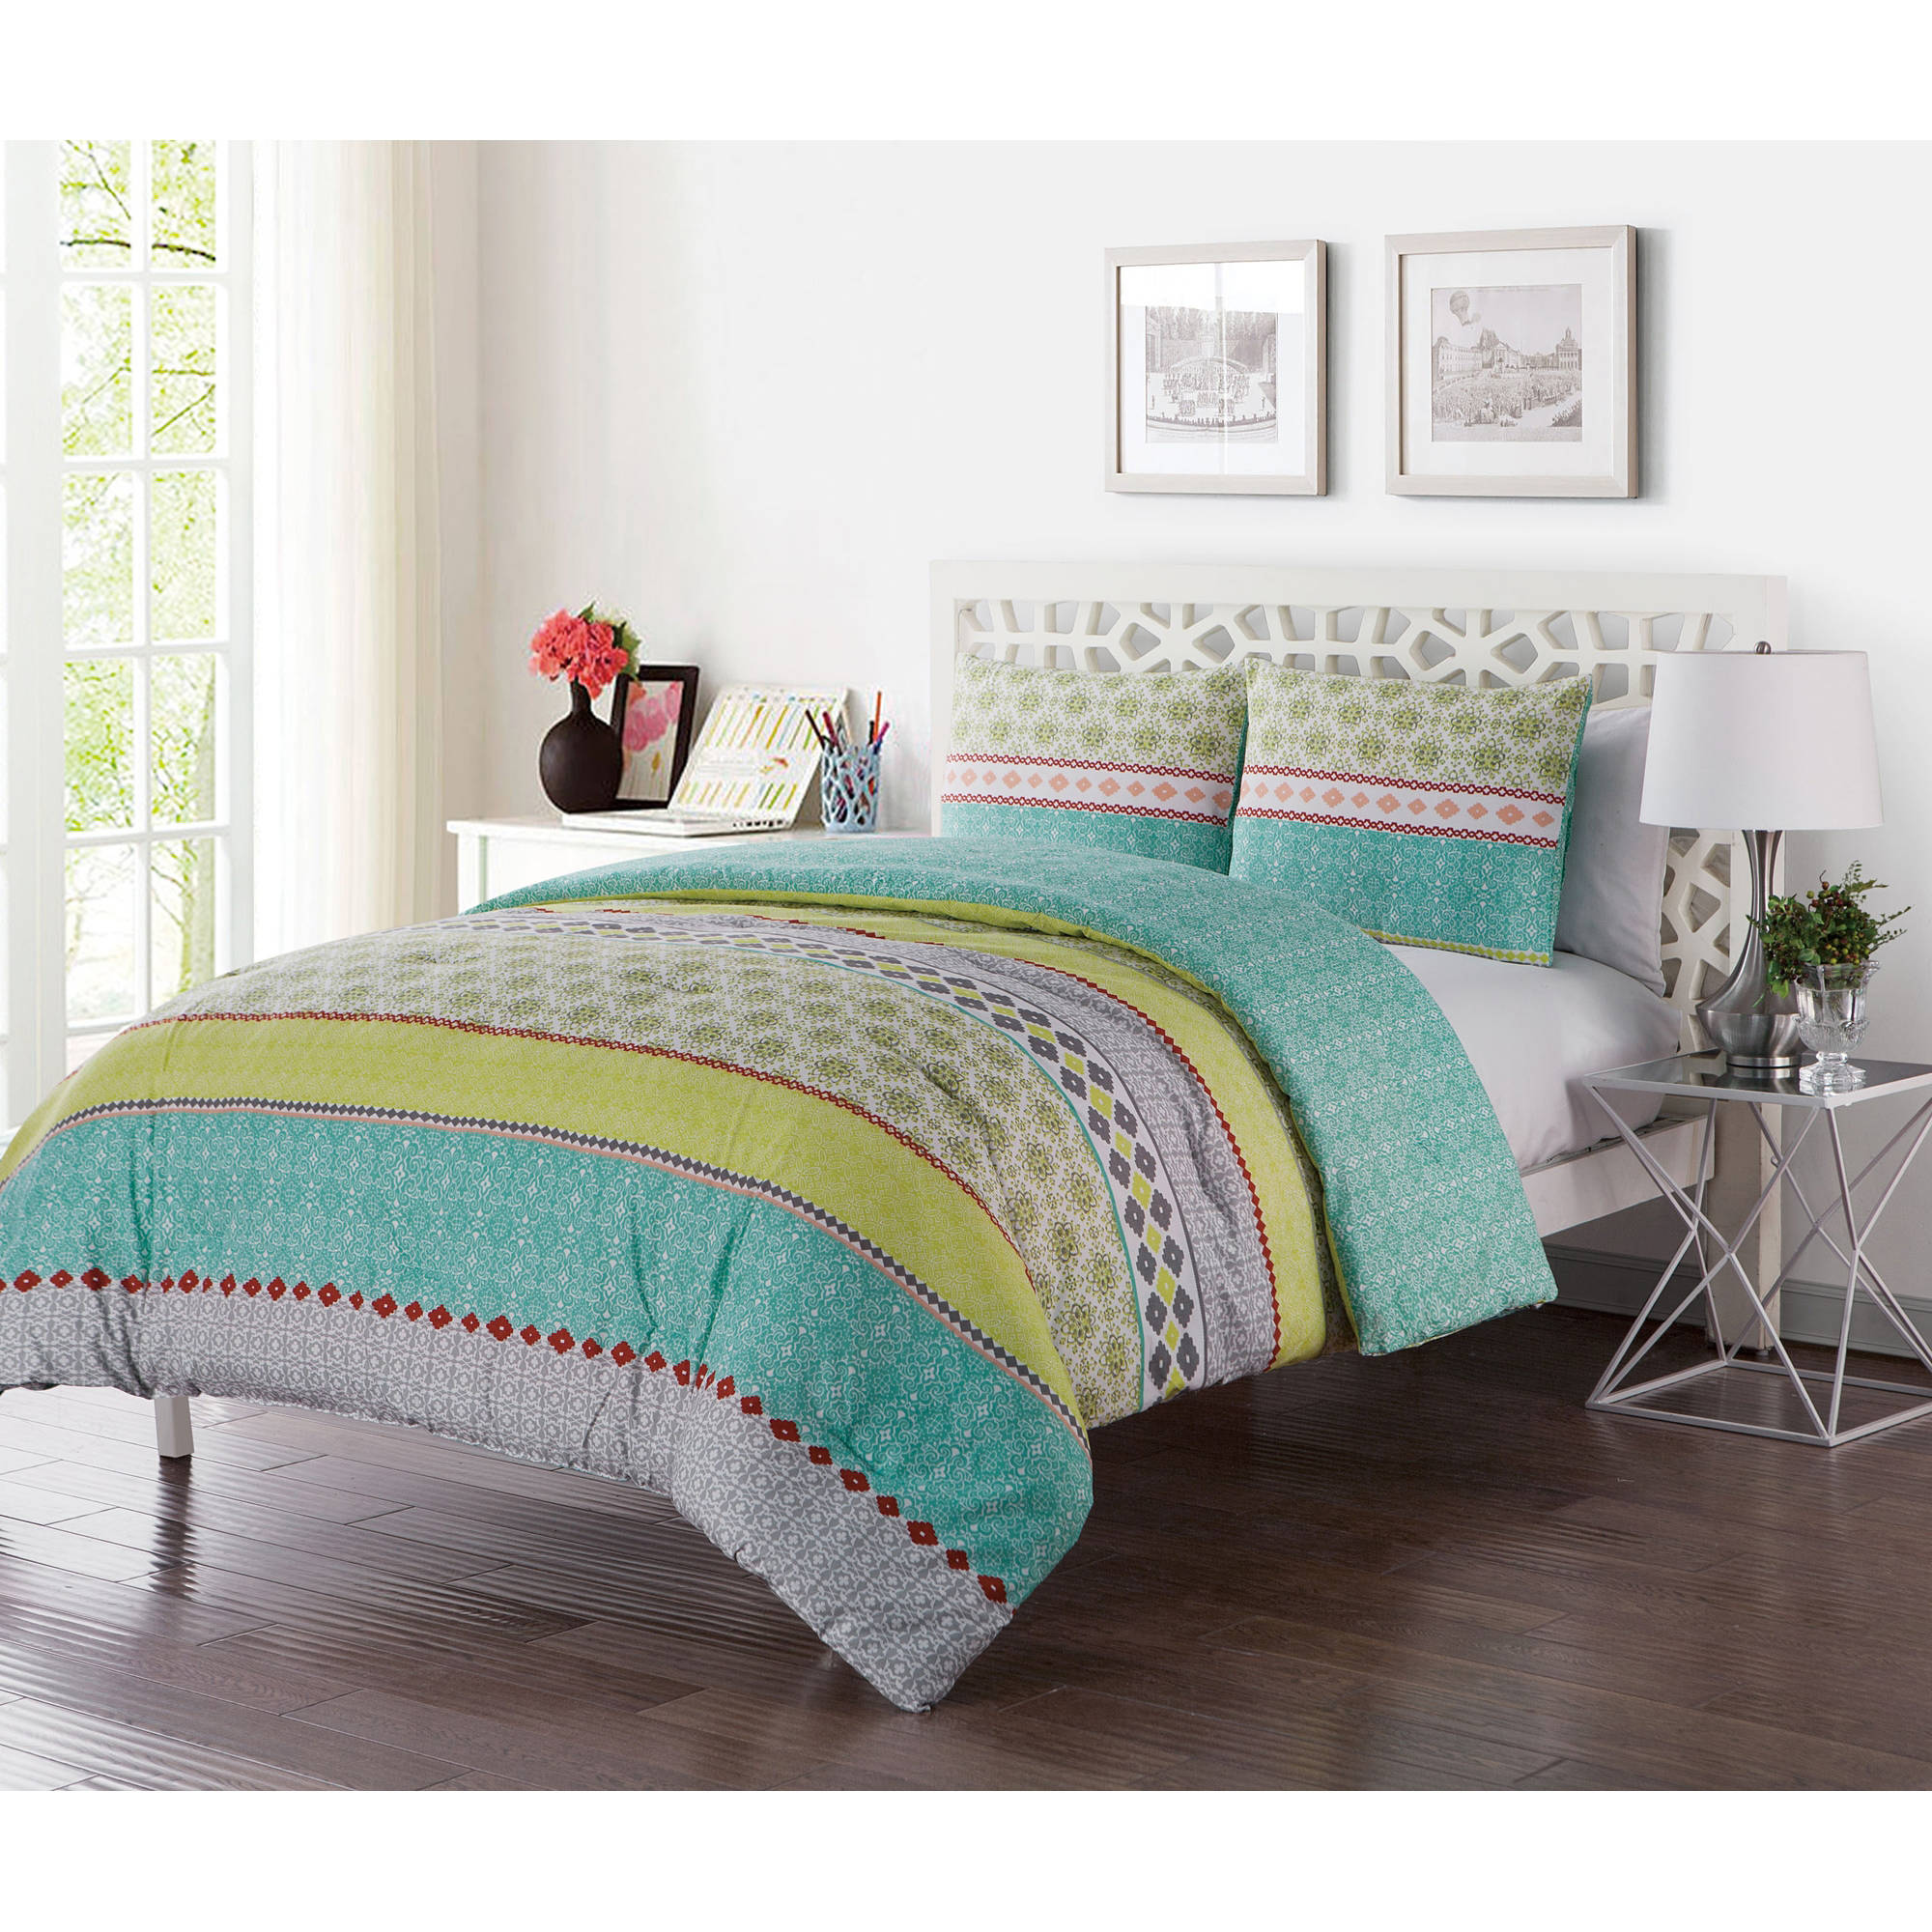 VCNY Home Multi-Color Geometric Printed 2/3 Piece Dharma Embellished Reversible Bedding Duvet Set, Shams Included